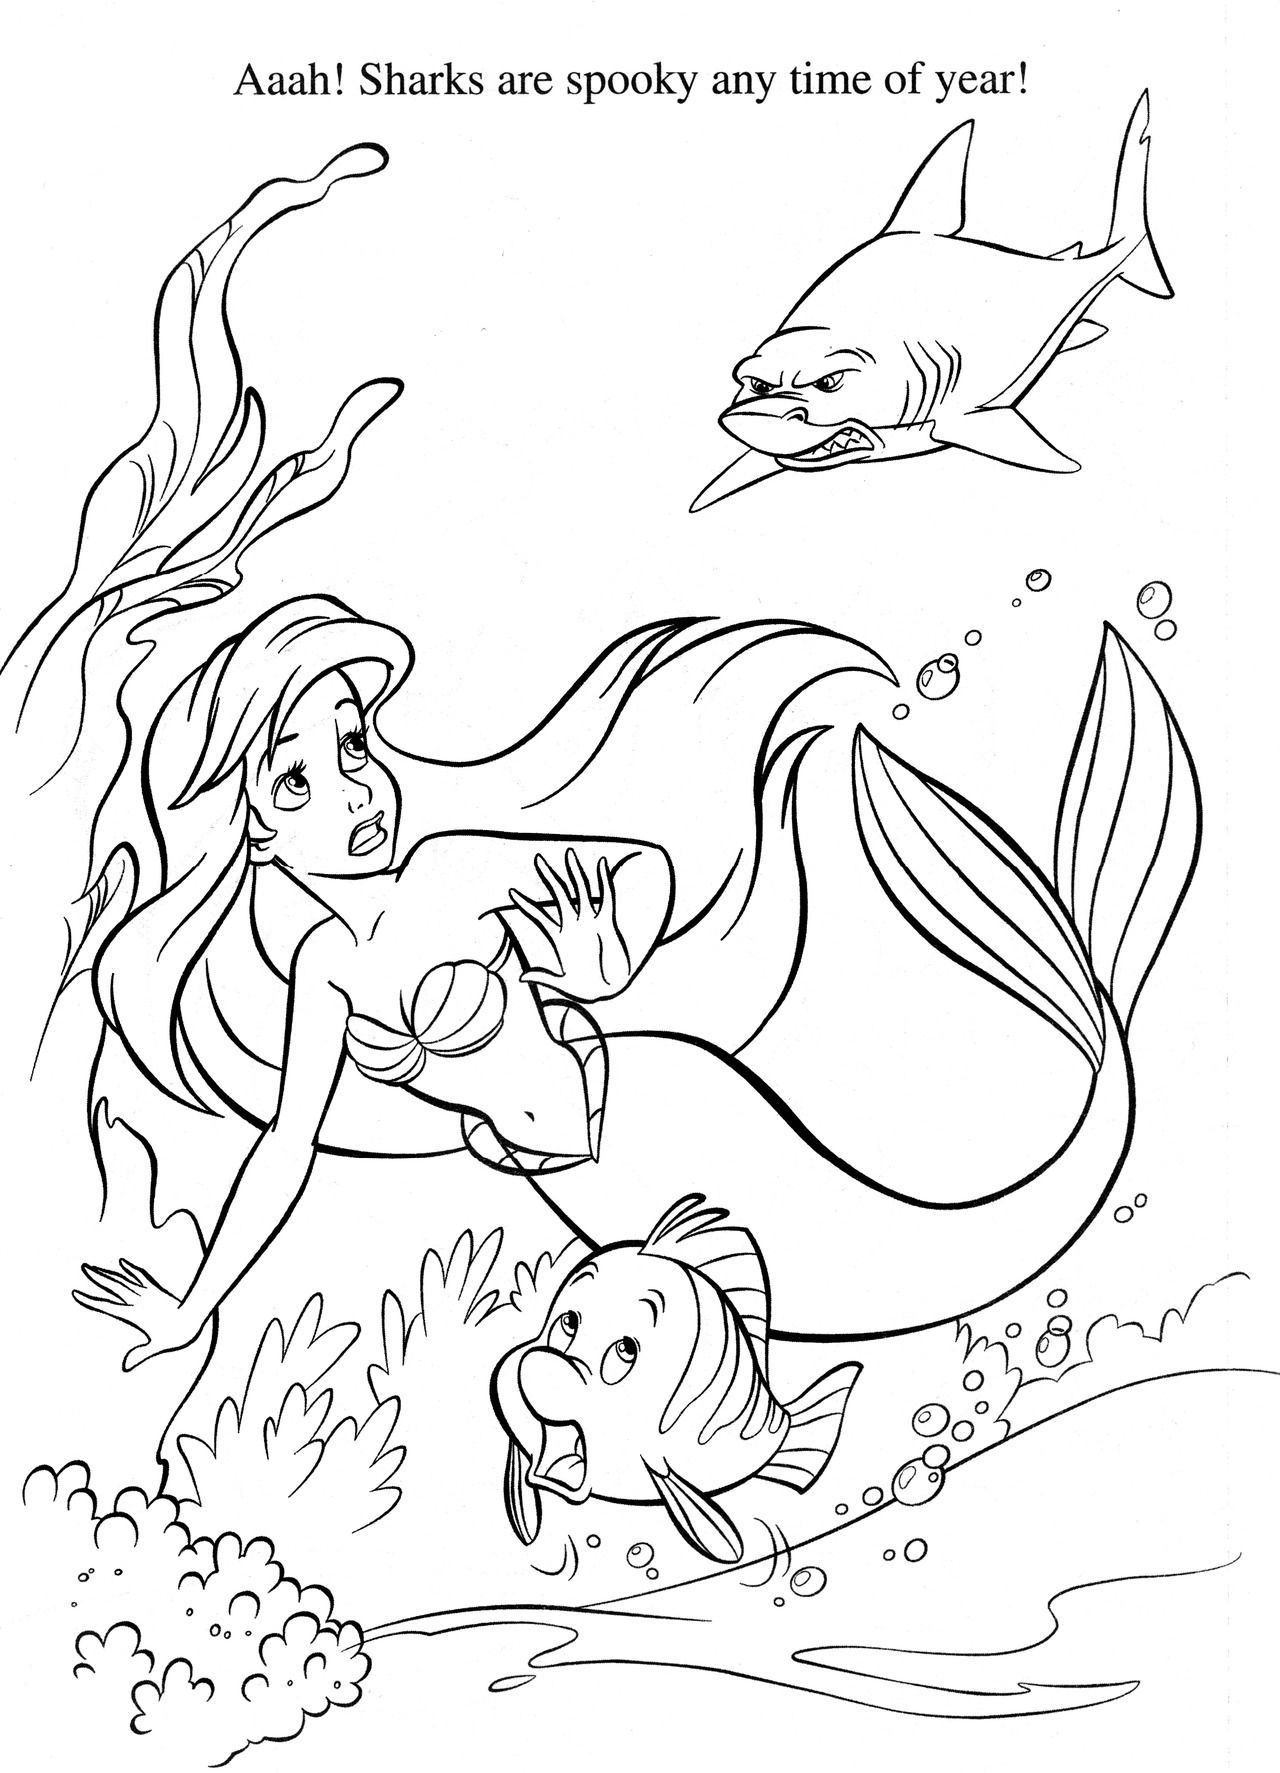 Currently On Hiatus Not Sure When Coming Back Sorry All Movies And Characters Are Tagged Disney Coloring Pages Shark Coloring Pages Ariel Coloring Pages [ 1773 x 1280 Pixel ]